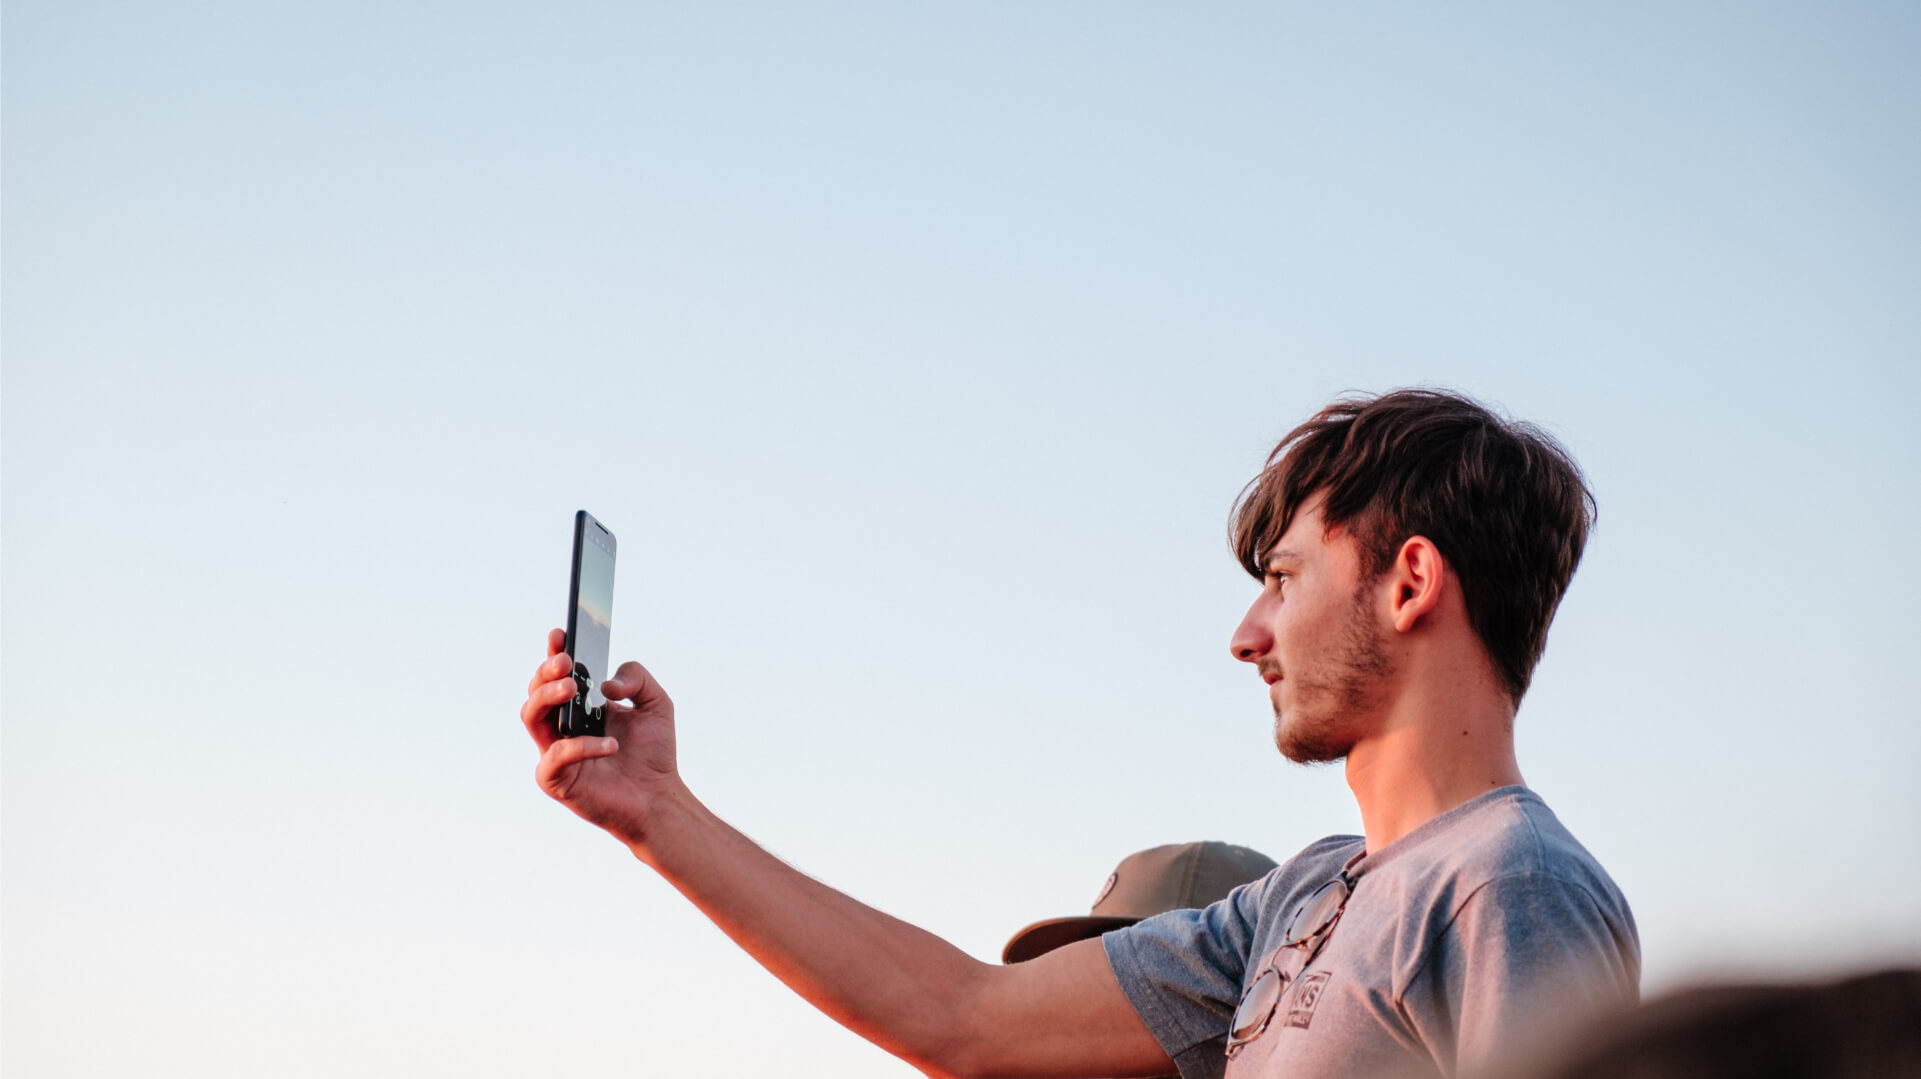 Man holding phone out and taking a photo of a sunset